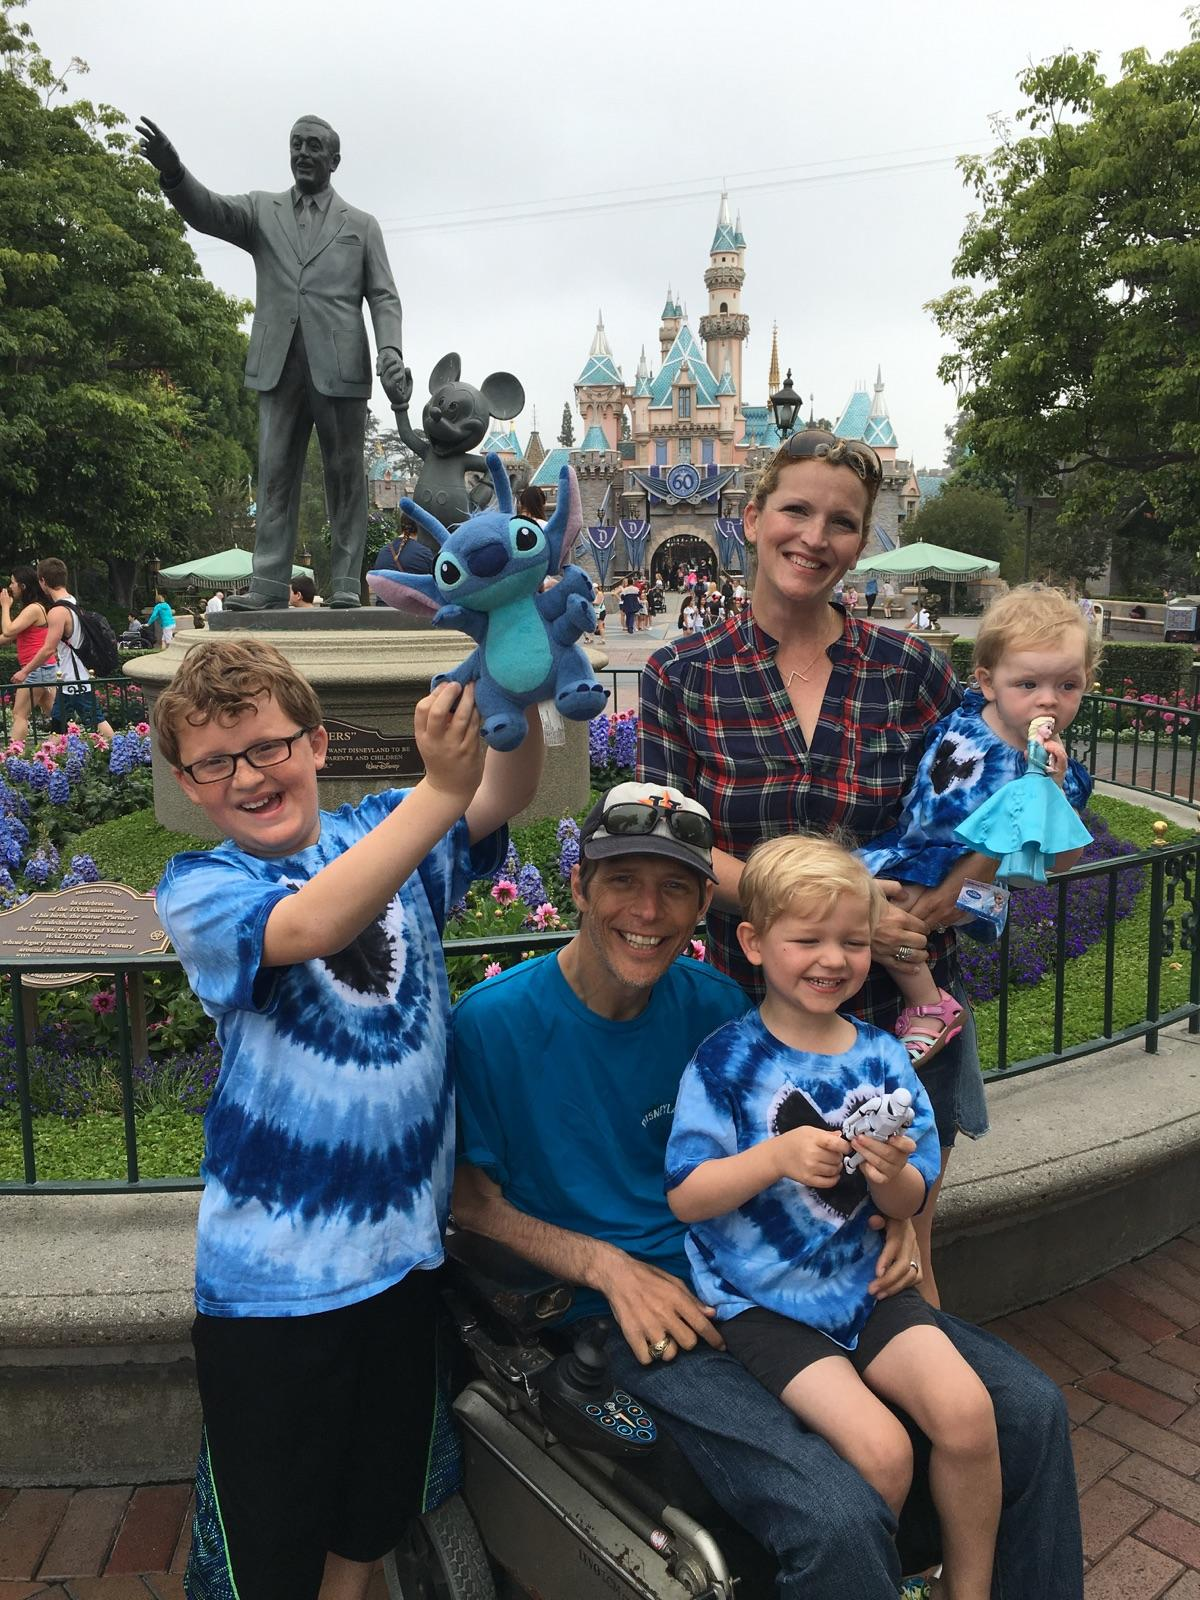 Toby and his wife, Jennifer, visit Disney World with their three children: Kieran (10), Sawyer (5) and Elizabeth (2).